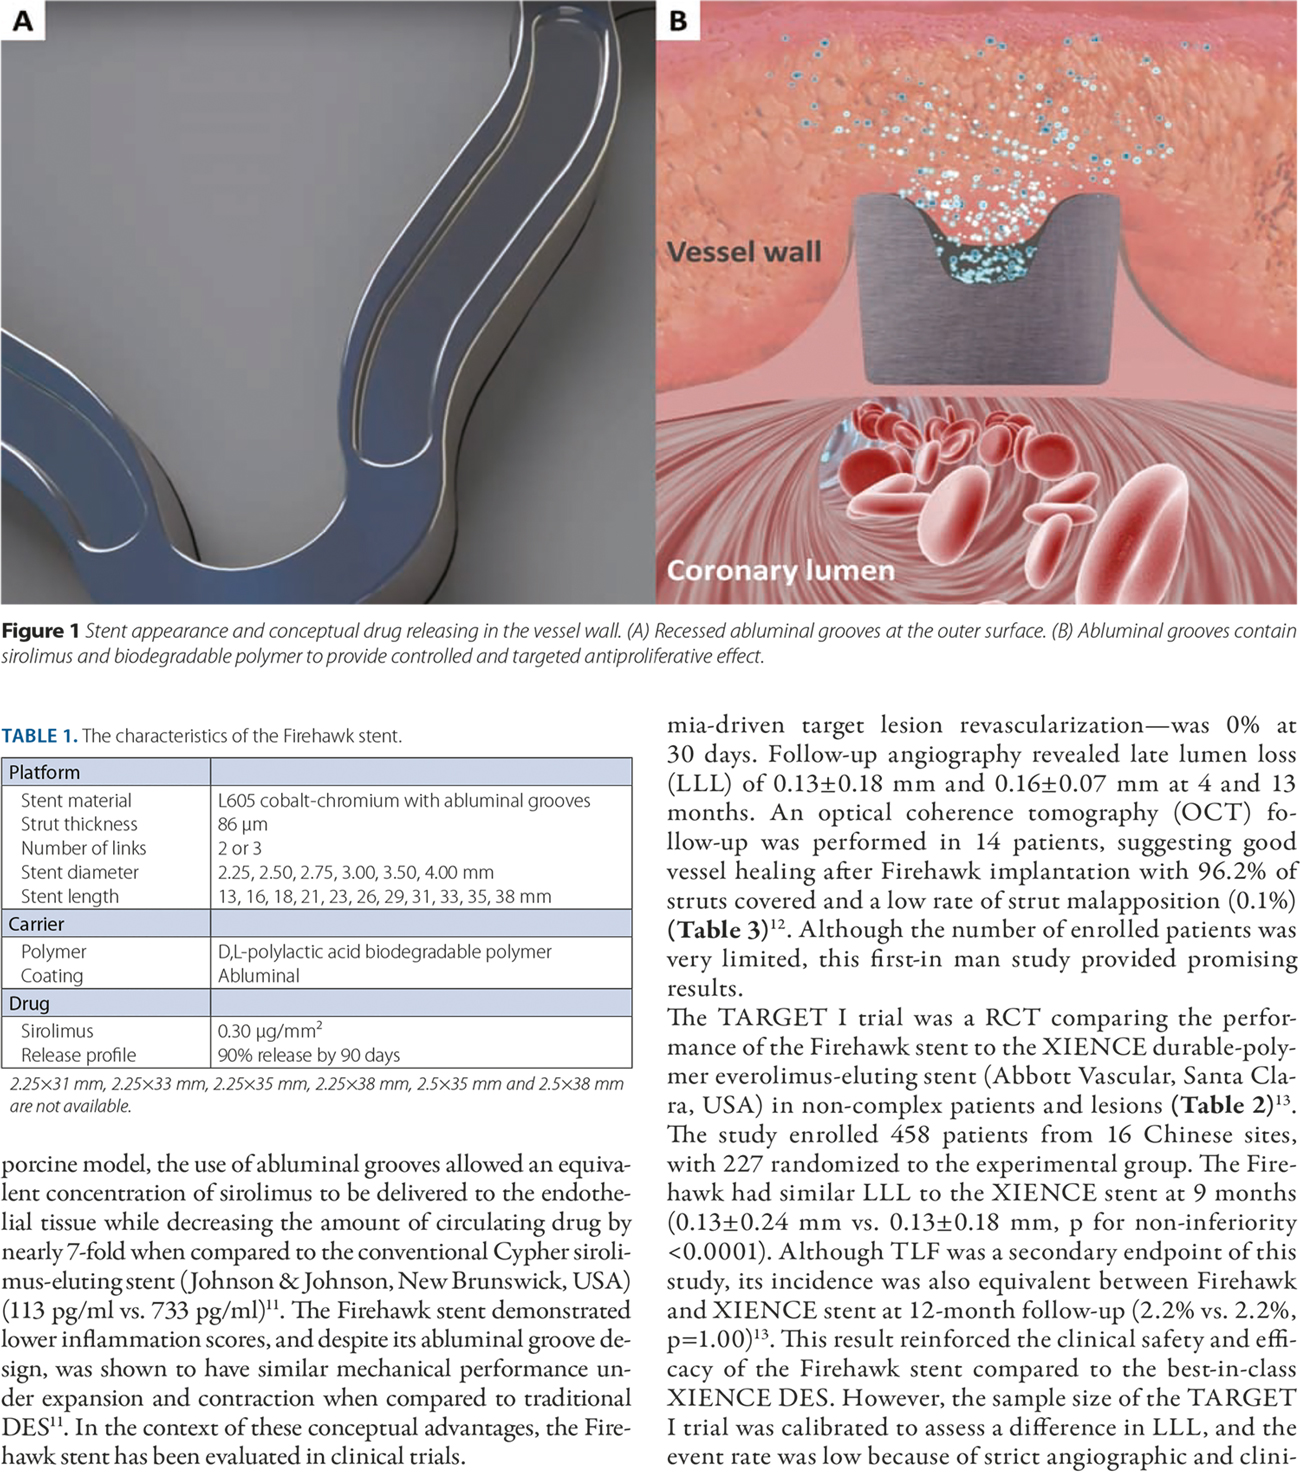 The Firehawk stent: a review of a novel abluminal groove-filled biodegradable polymer sirolimus-eluting stent